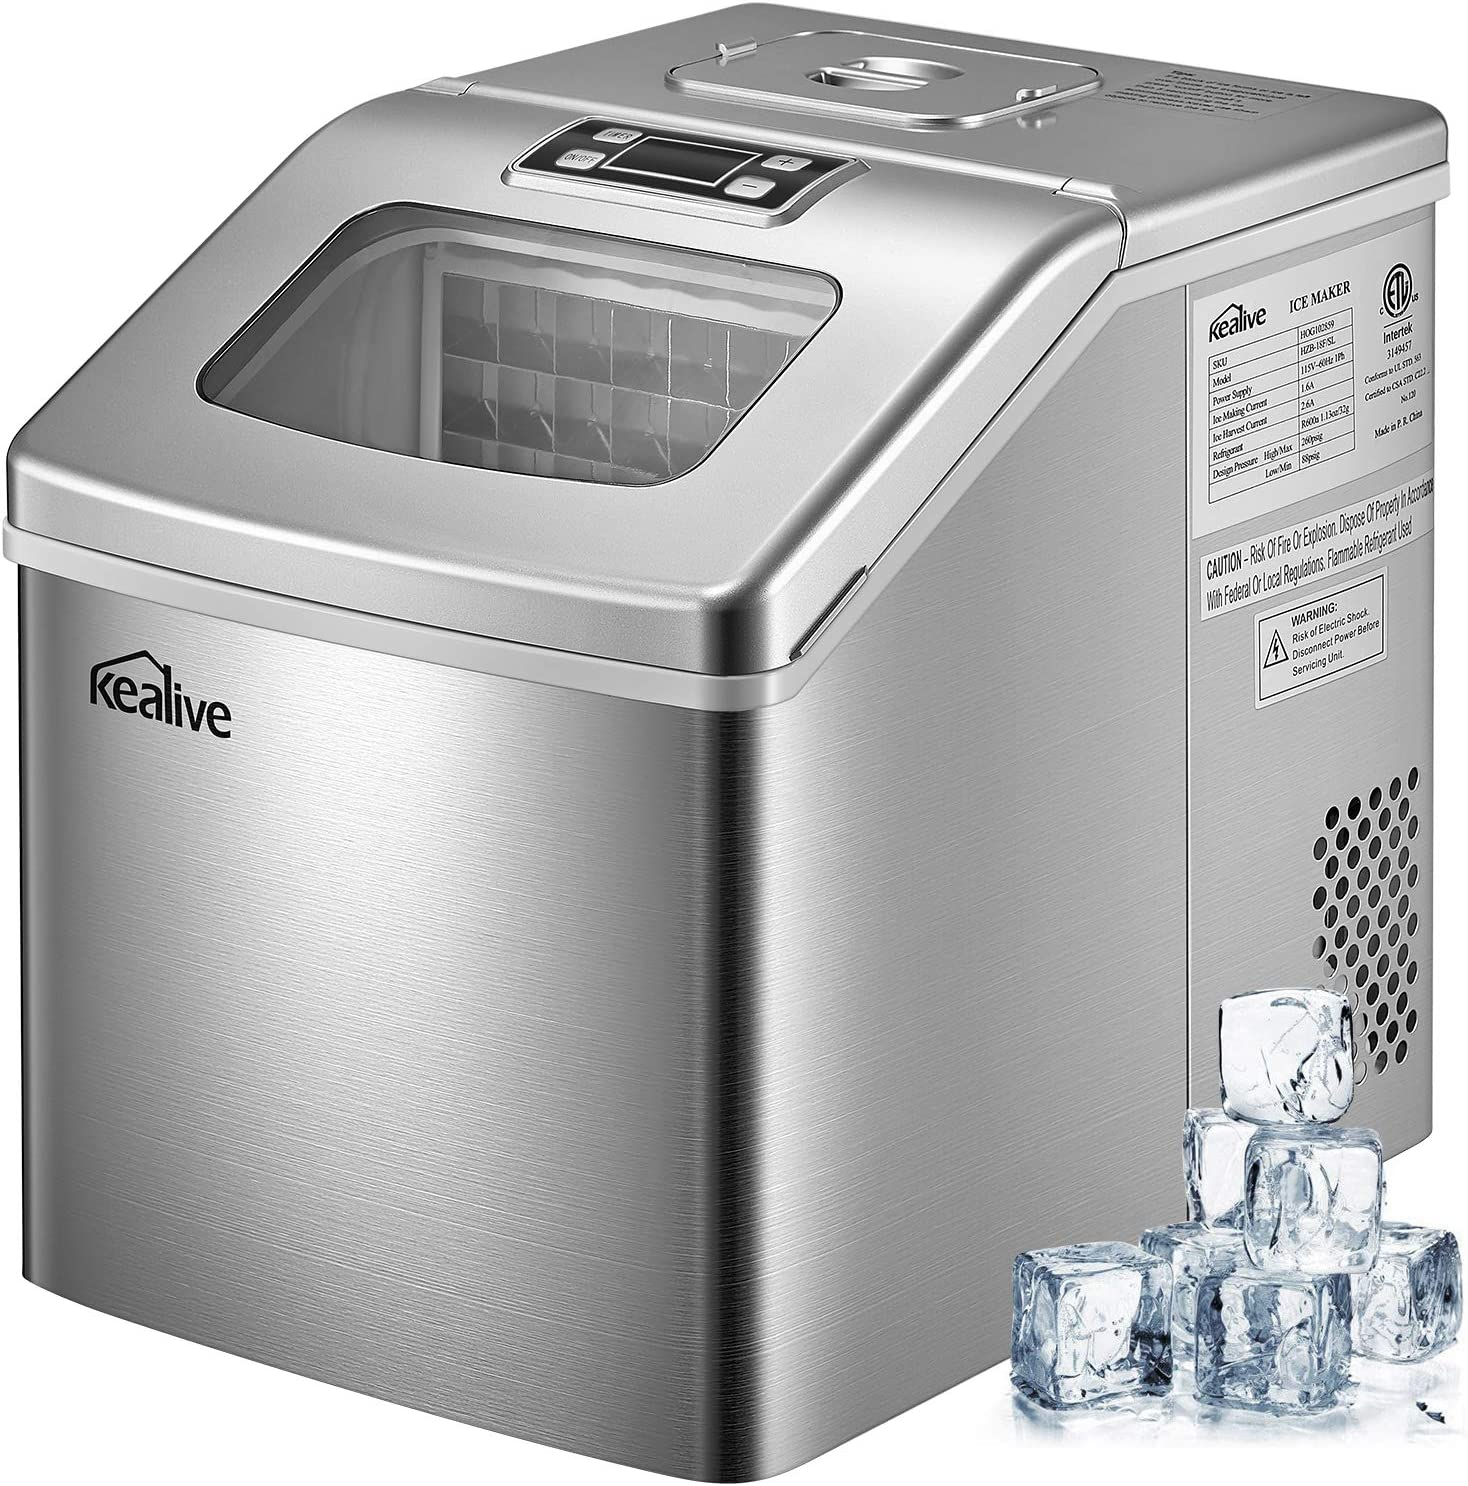 Ice Maker Machine 48 lbs ice in 24 hours Portable Ice Maker for Countertop Clear Square Ice Cubes Ready in 15 minutes with 2.4 lbs Storage and Scoop Stainless Steel by Kealive